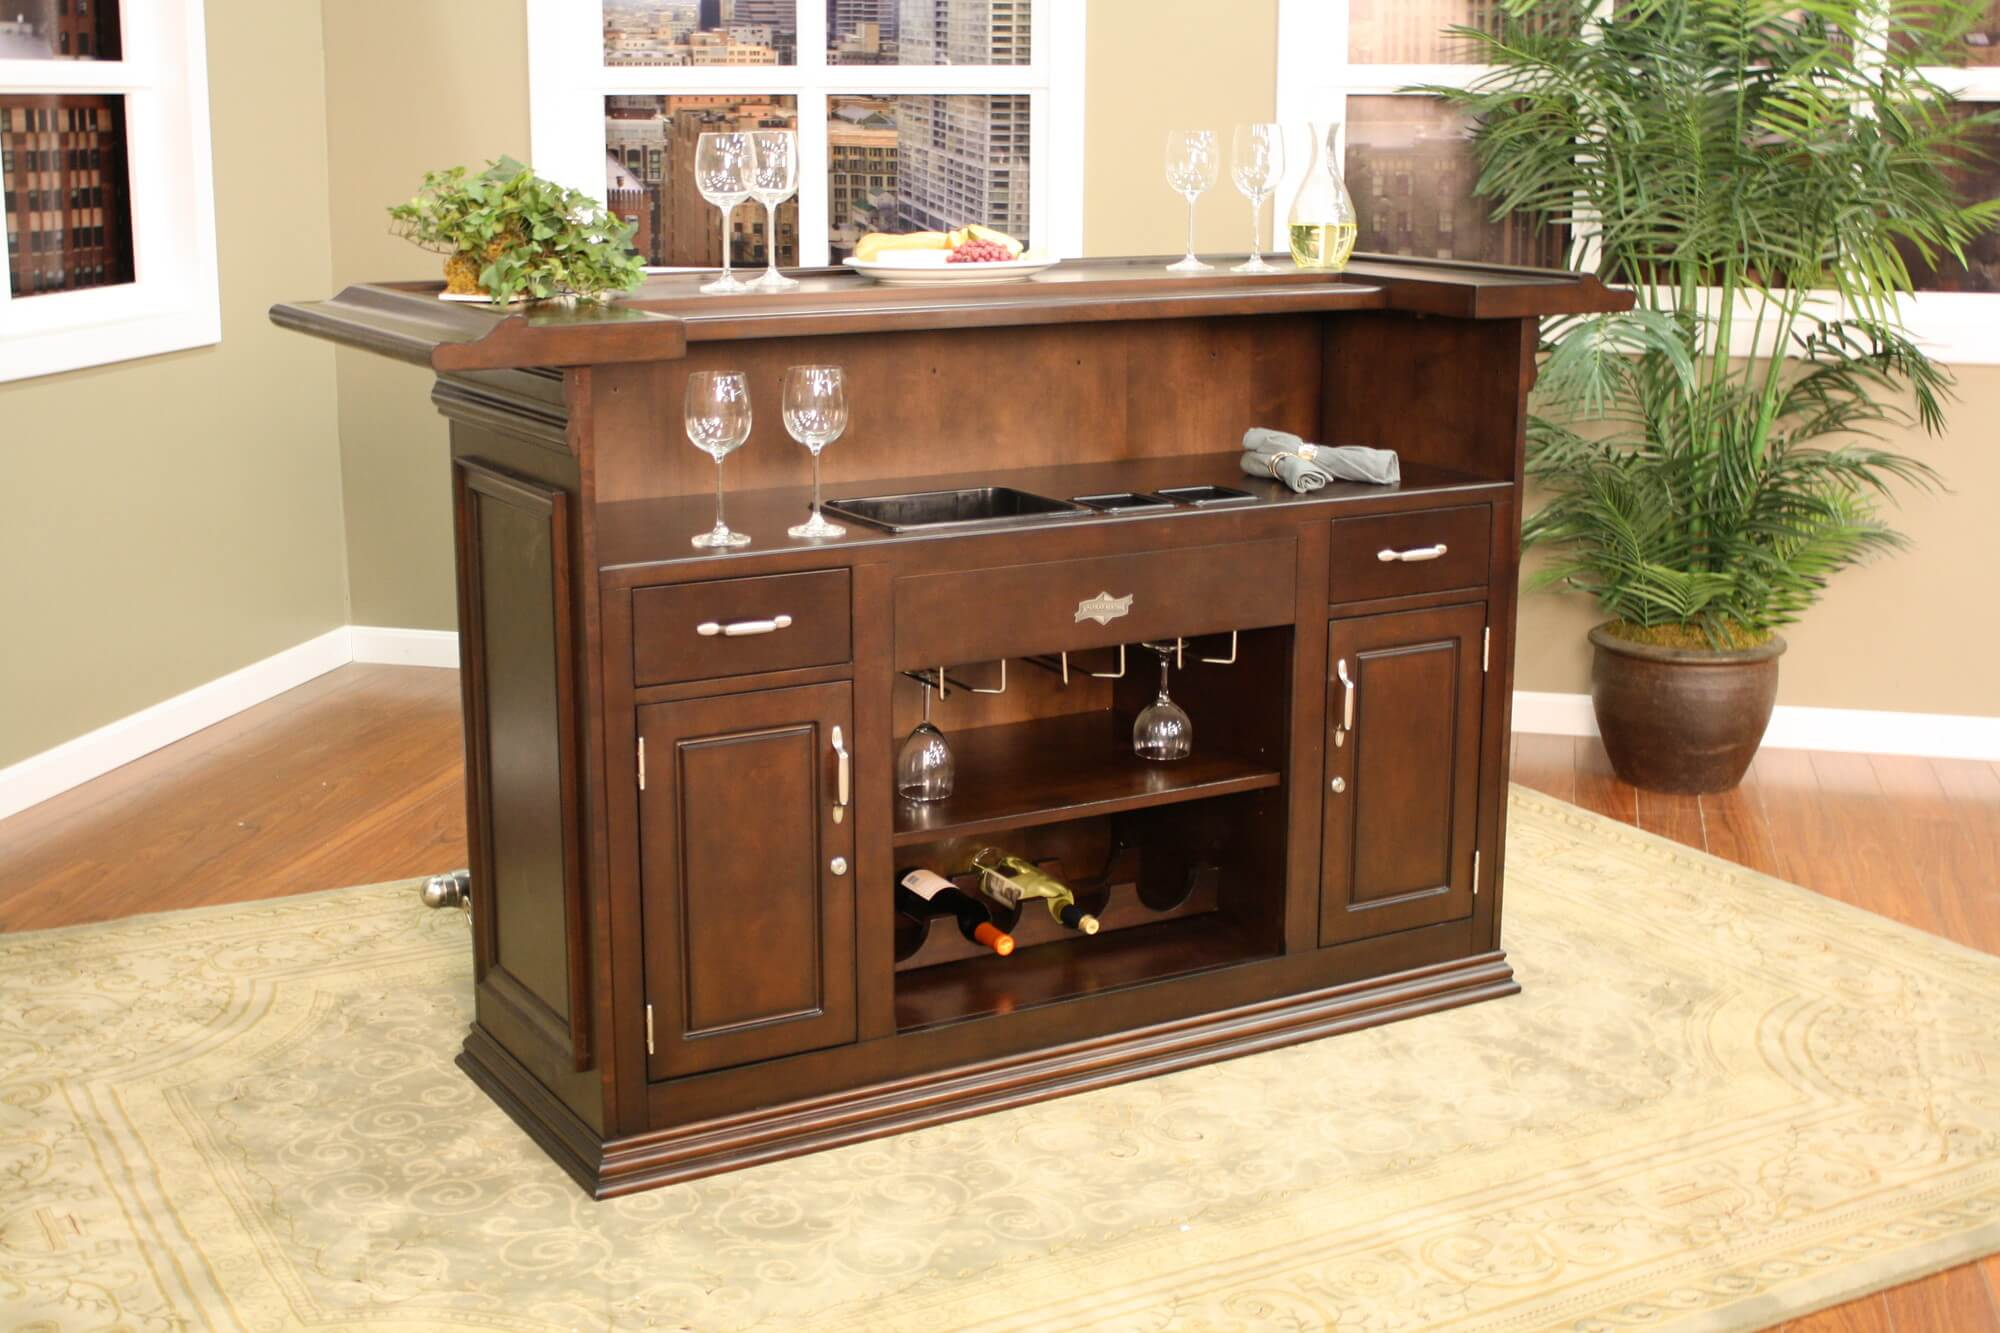 Back end view - For a smaller design, this home bar offers some great features such as a foot railing and a behind-the-bar preparation counter with built-in ice bucket and small wine rack.